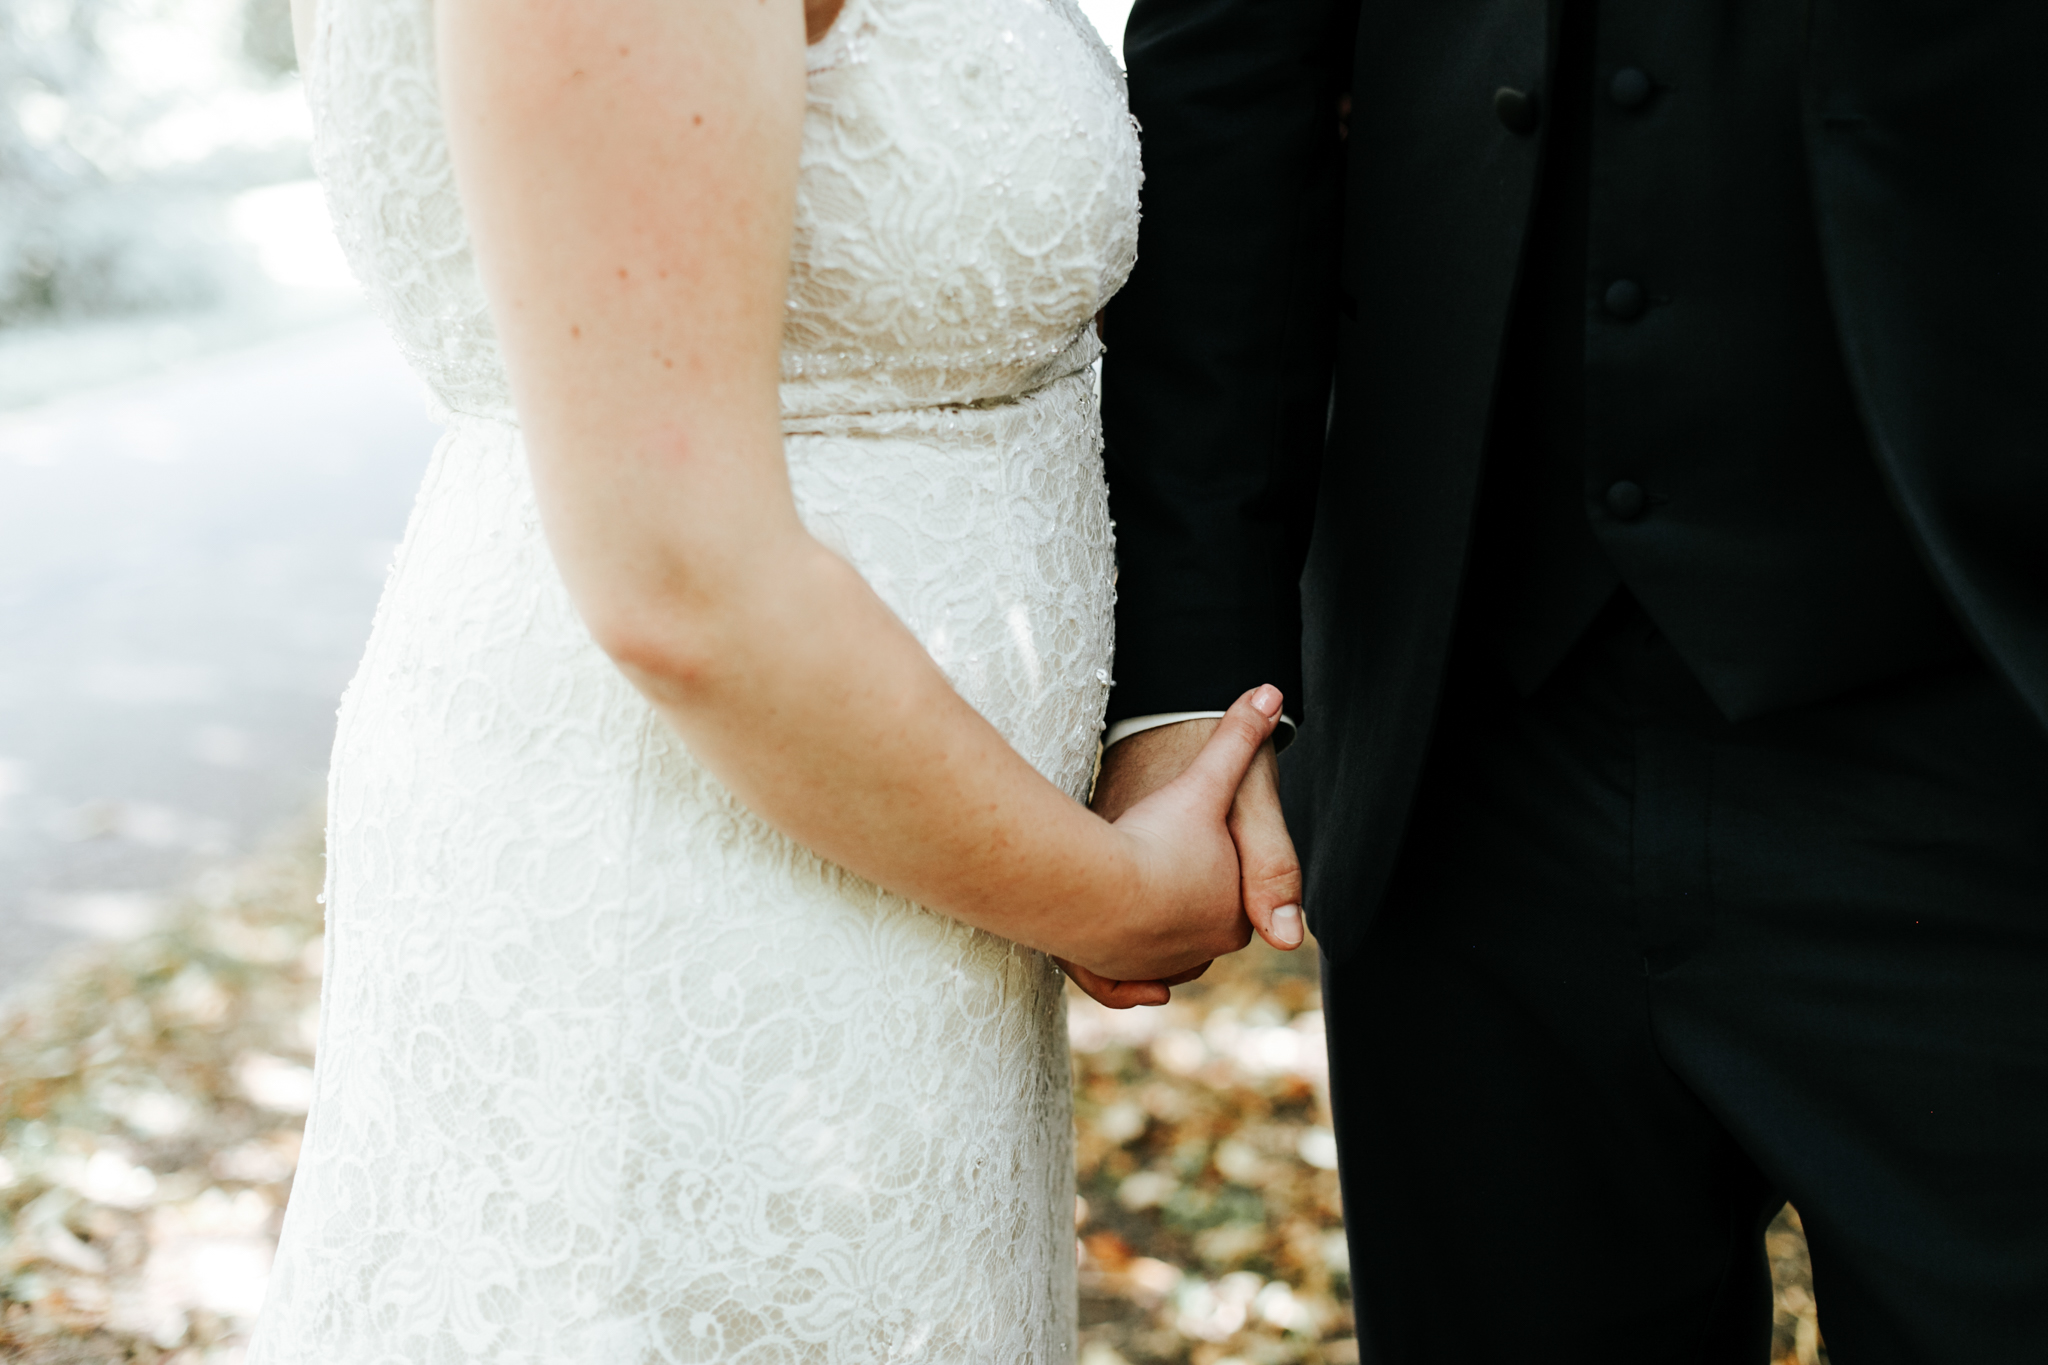 red-deer-wedding-photographer-love-and-be-loved-photography-emily-gab-photo-image-picture-159.jpg